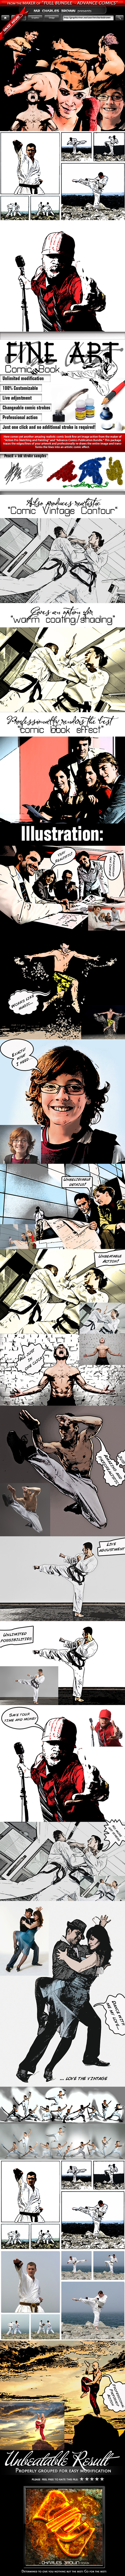 Comic Book Fine Art - Photo Effects Actions